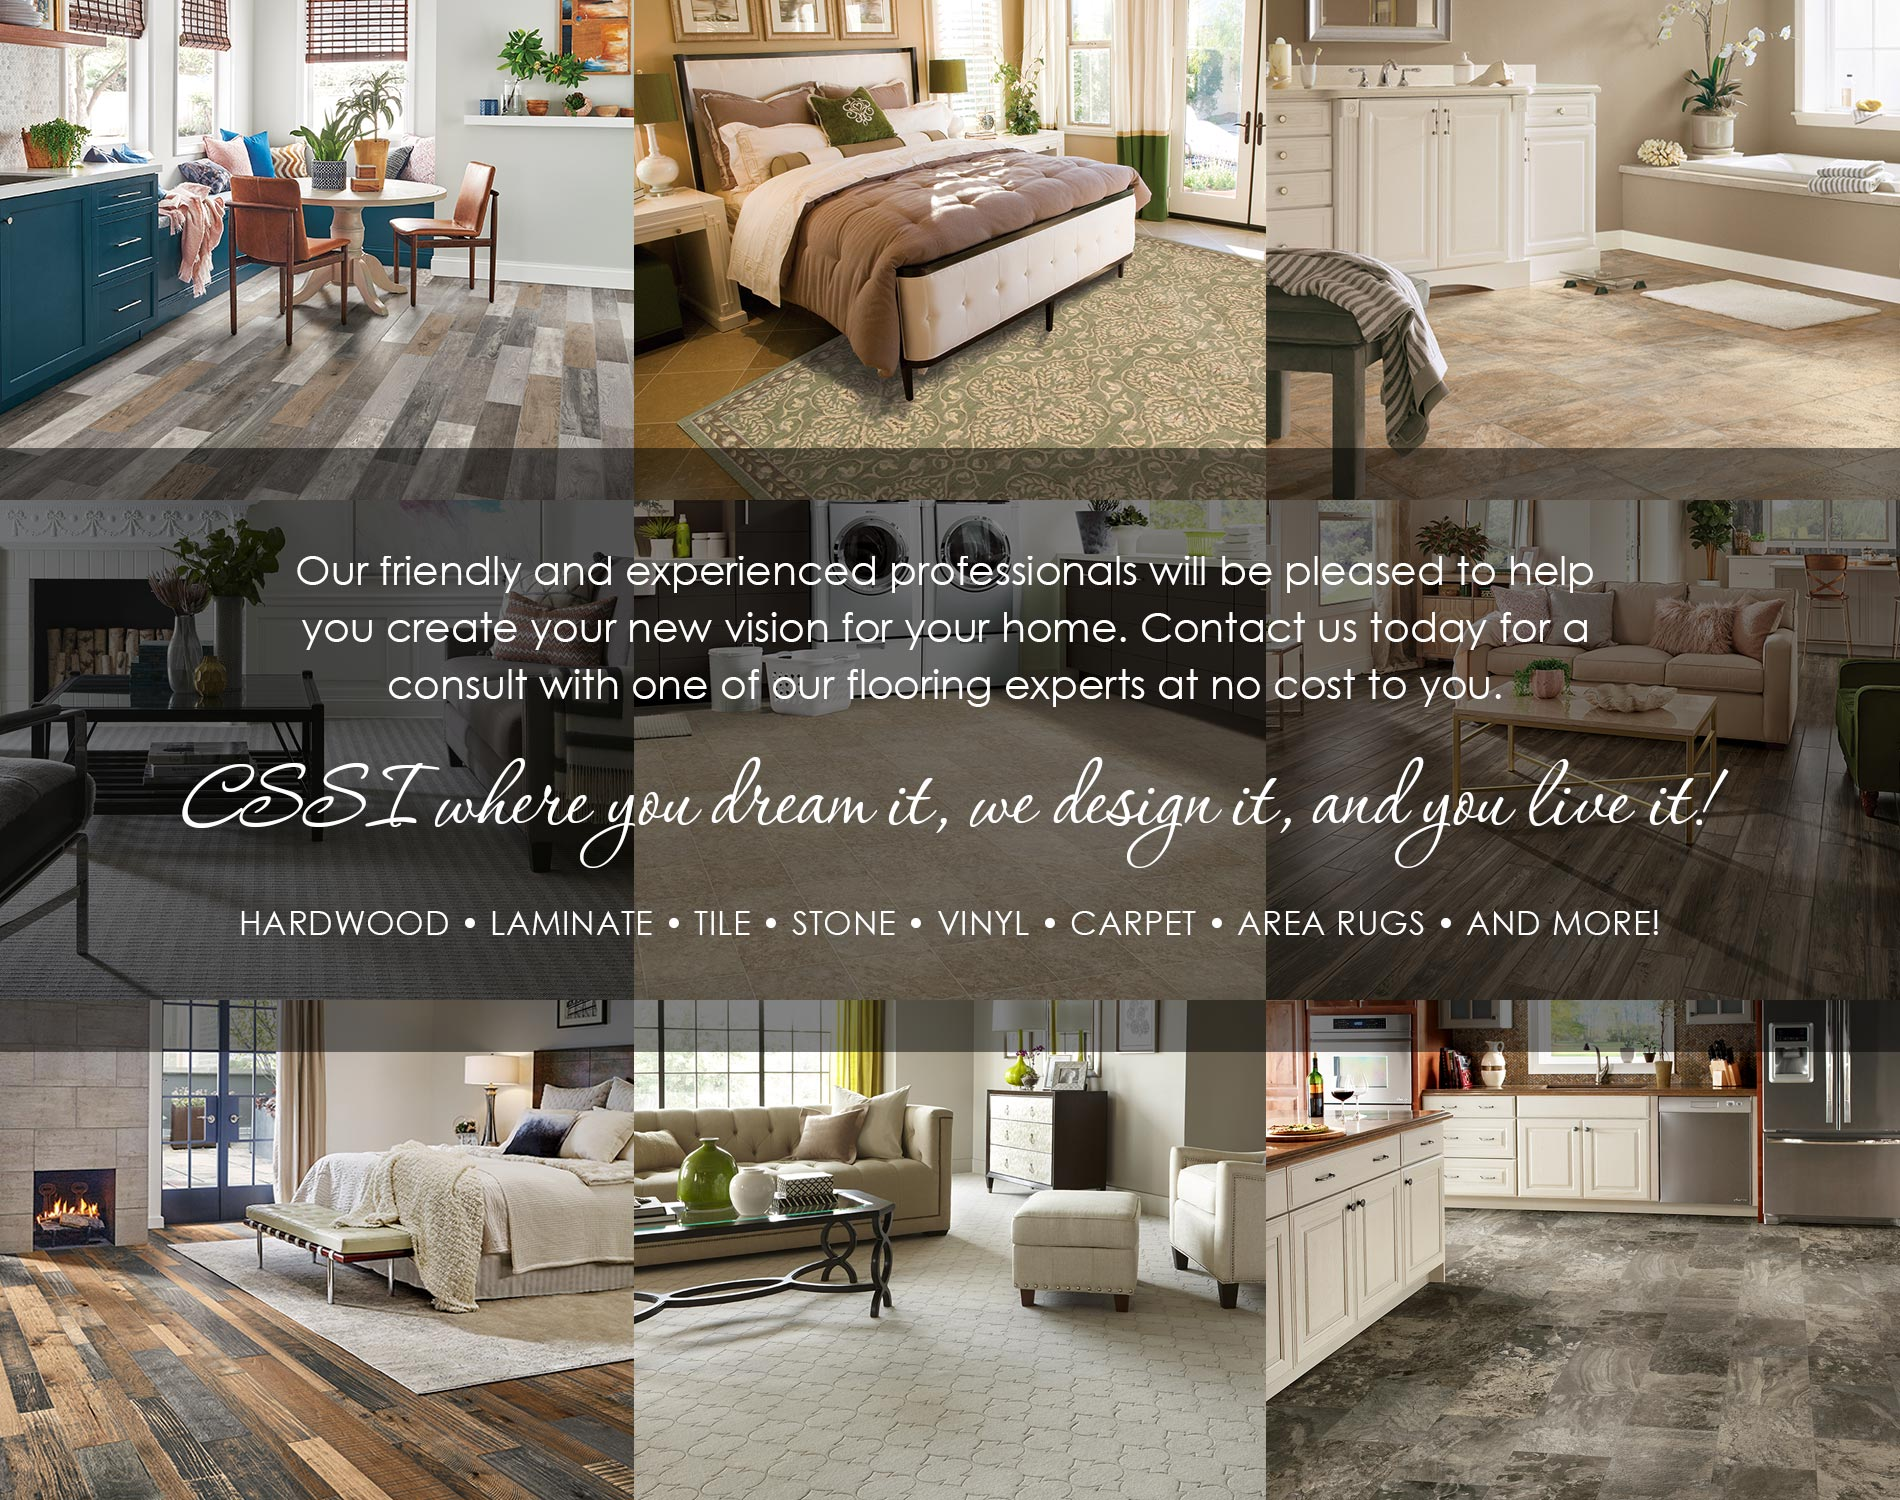 Our friendly and experienced professionals will be pleased to help you create your new vision for your home. Contact us today for a consult with one of our flooring experts at no cost to you.